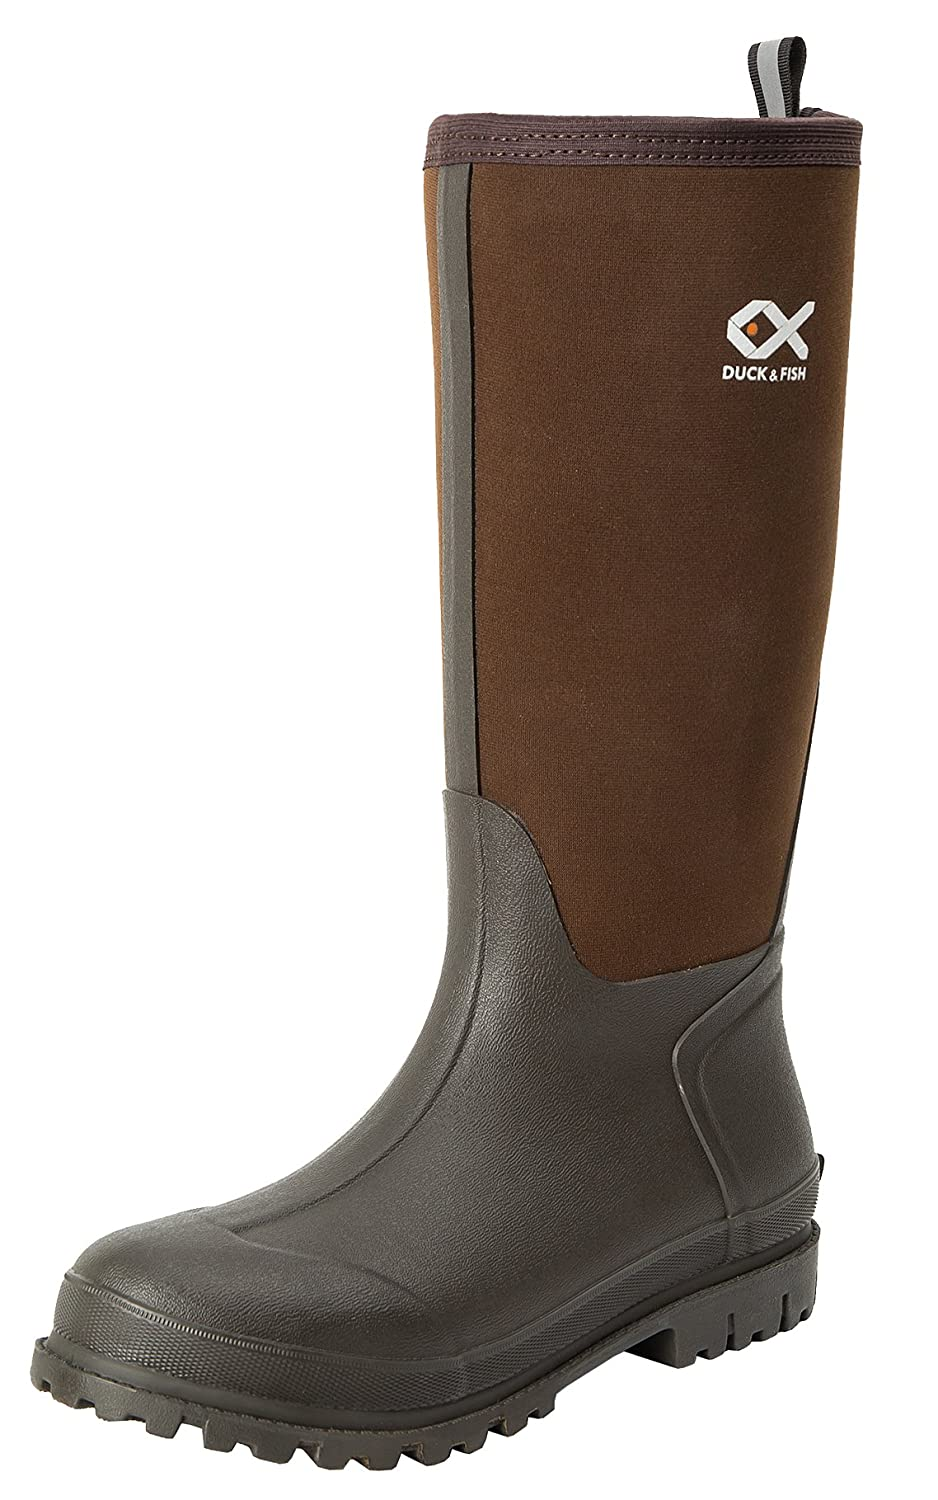 Duck and Fish 16 Fishing Hunting Neoprene Rubber Molded Outsole Knee Boot